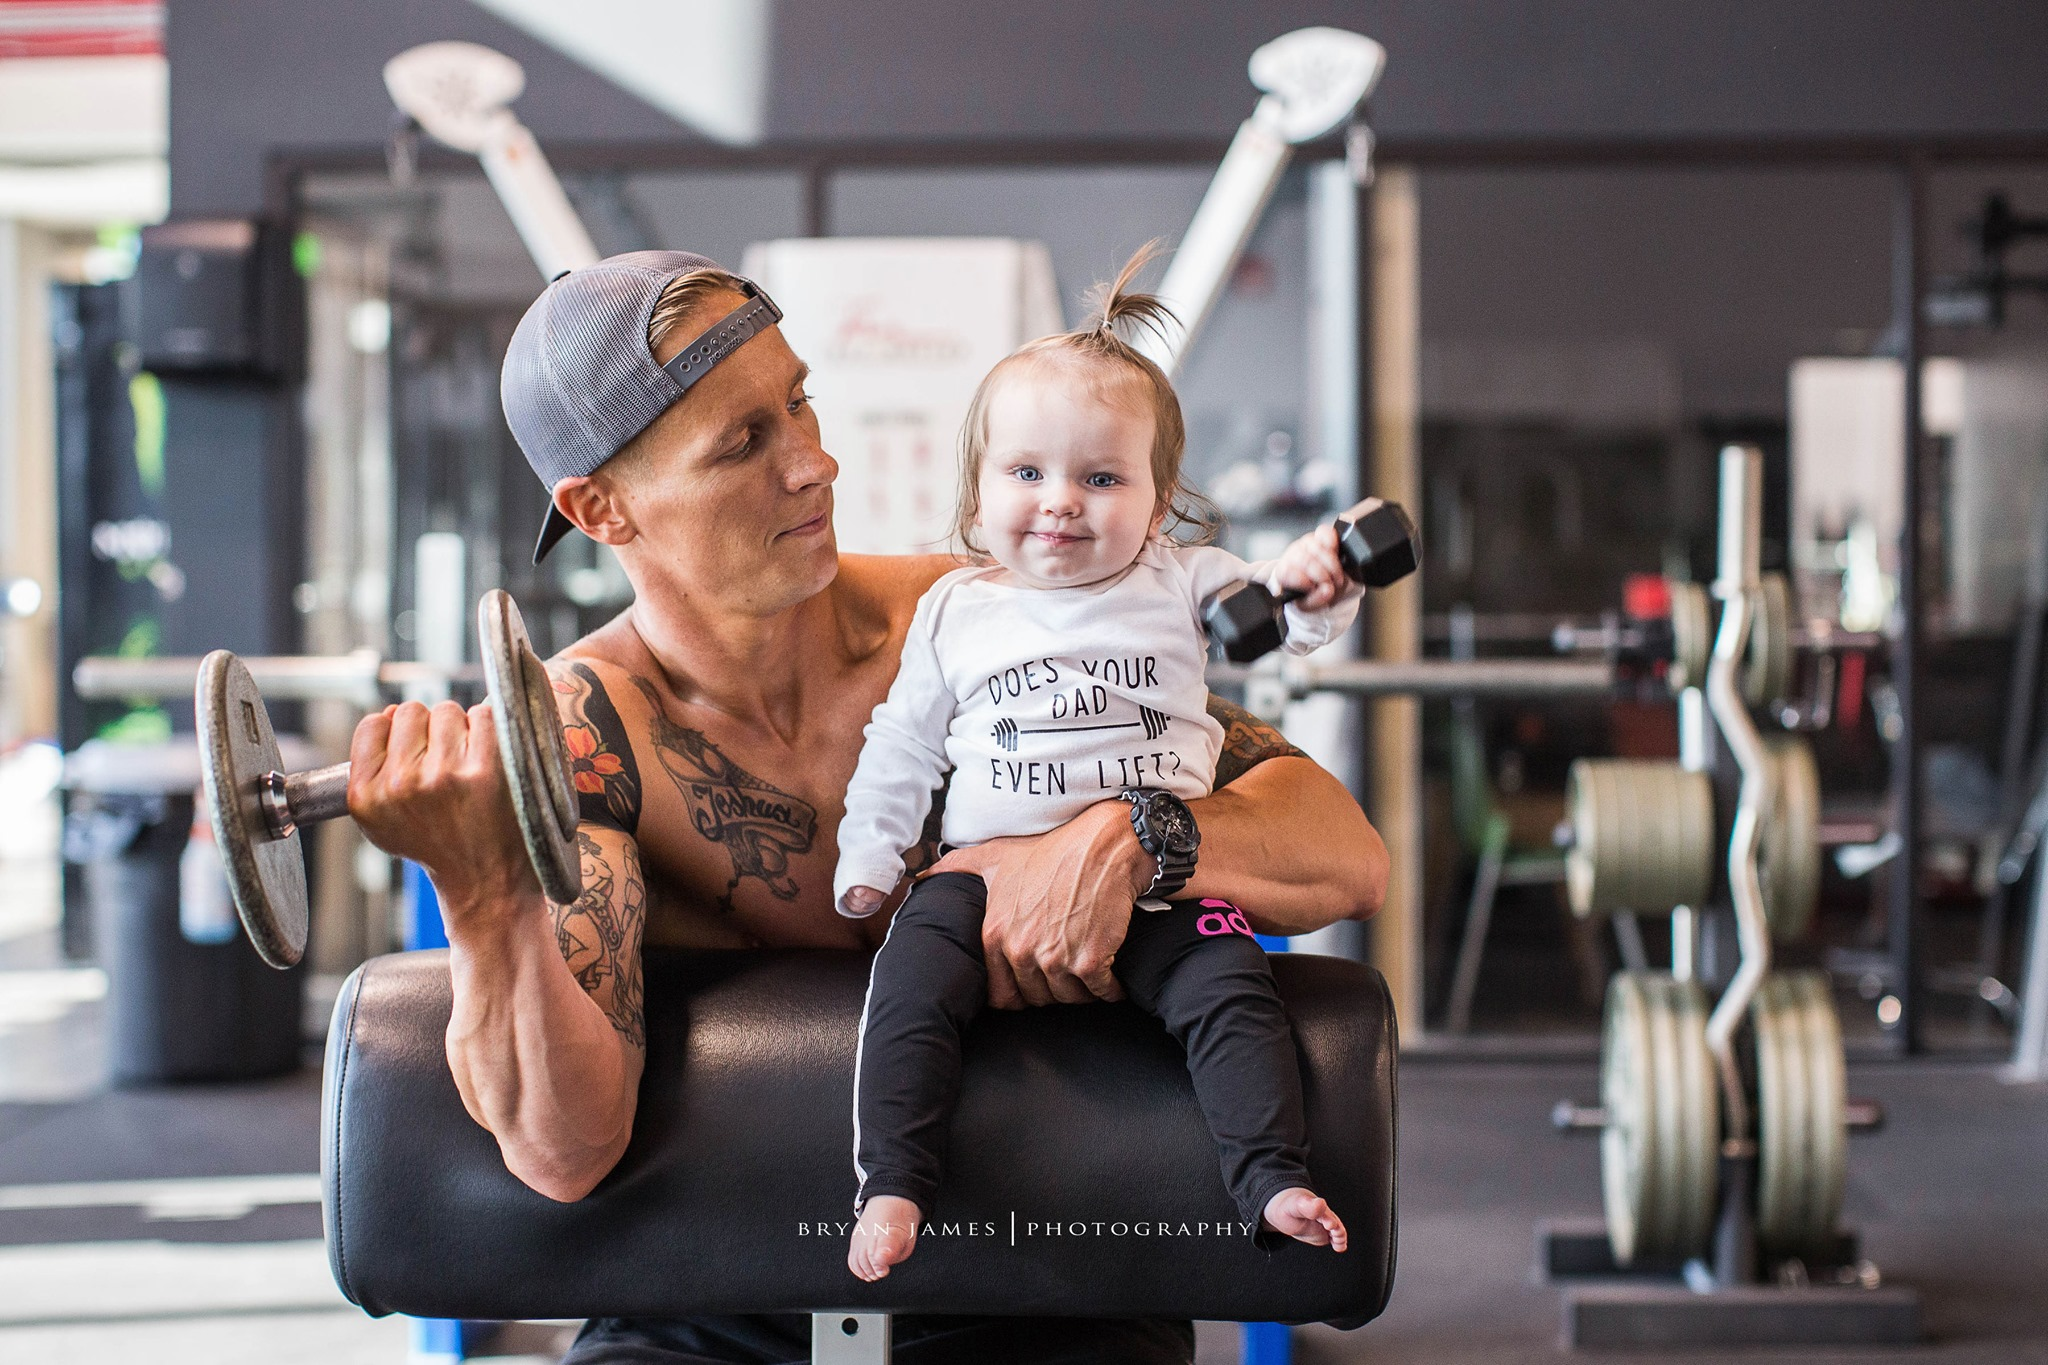 How A Weightlifting Community of Dads Became a Lifeline for This Fitness Coach